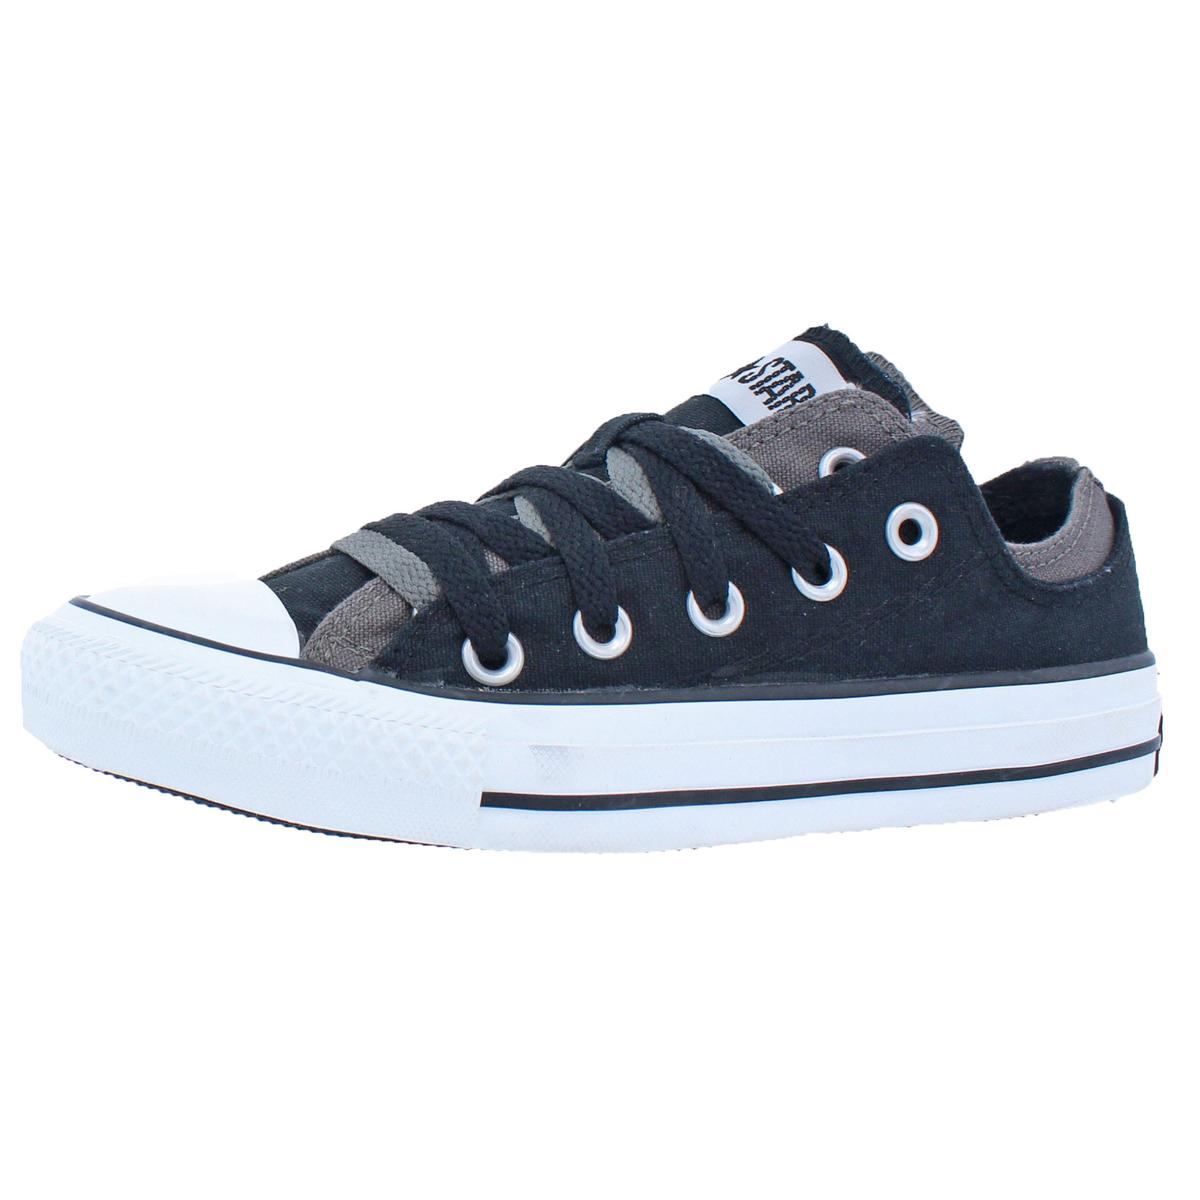 78cd10be0698 Details about Converse Mens Chuck Taylor All Star Double Upper Skate Shoes  3 Medium (D) 9481